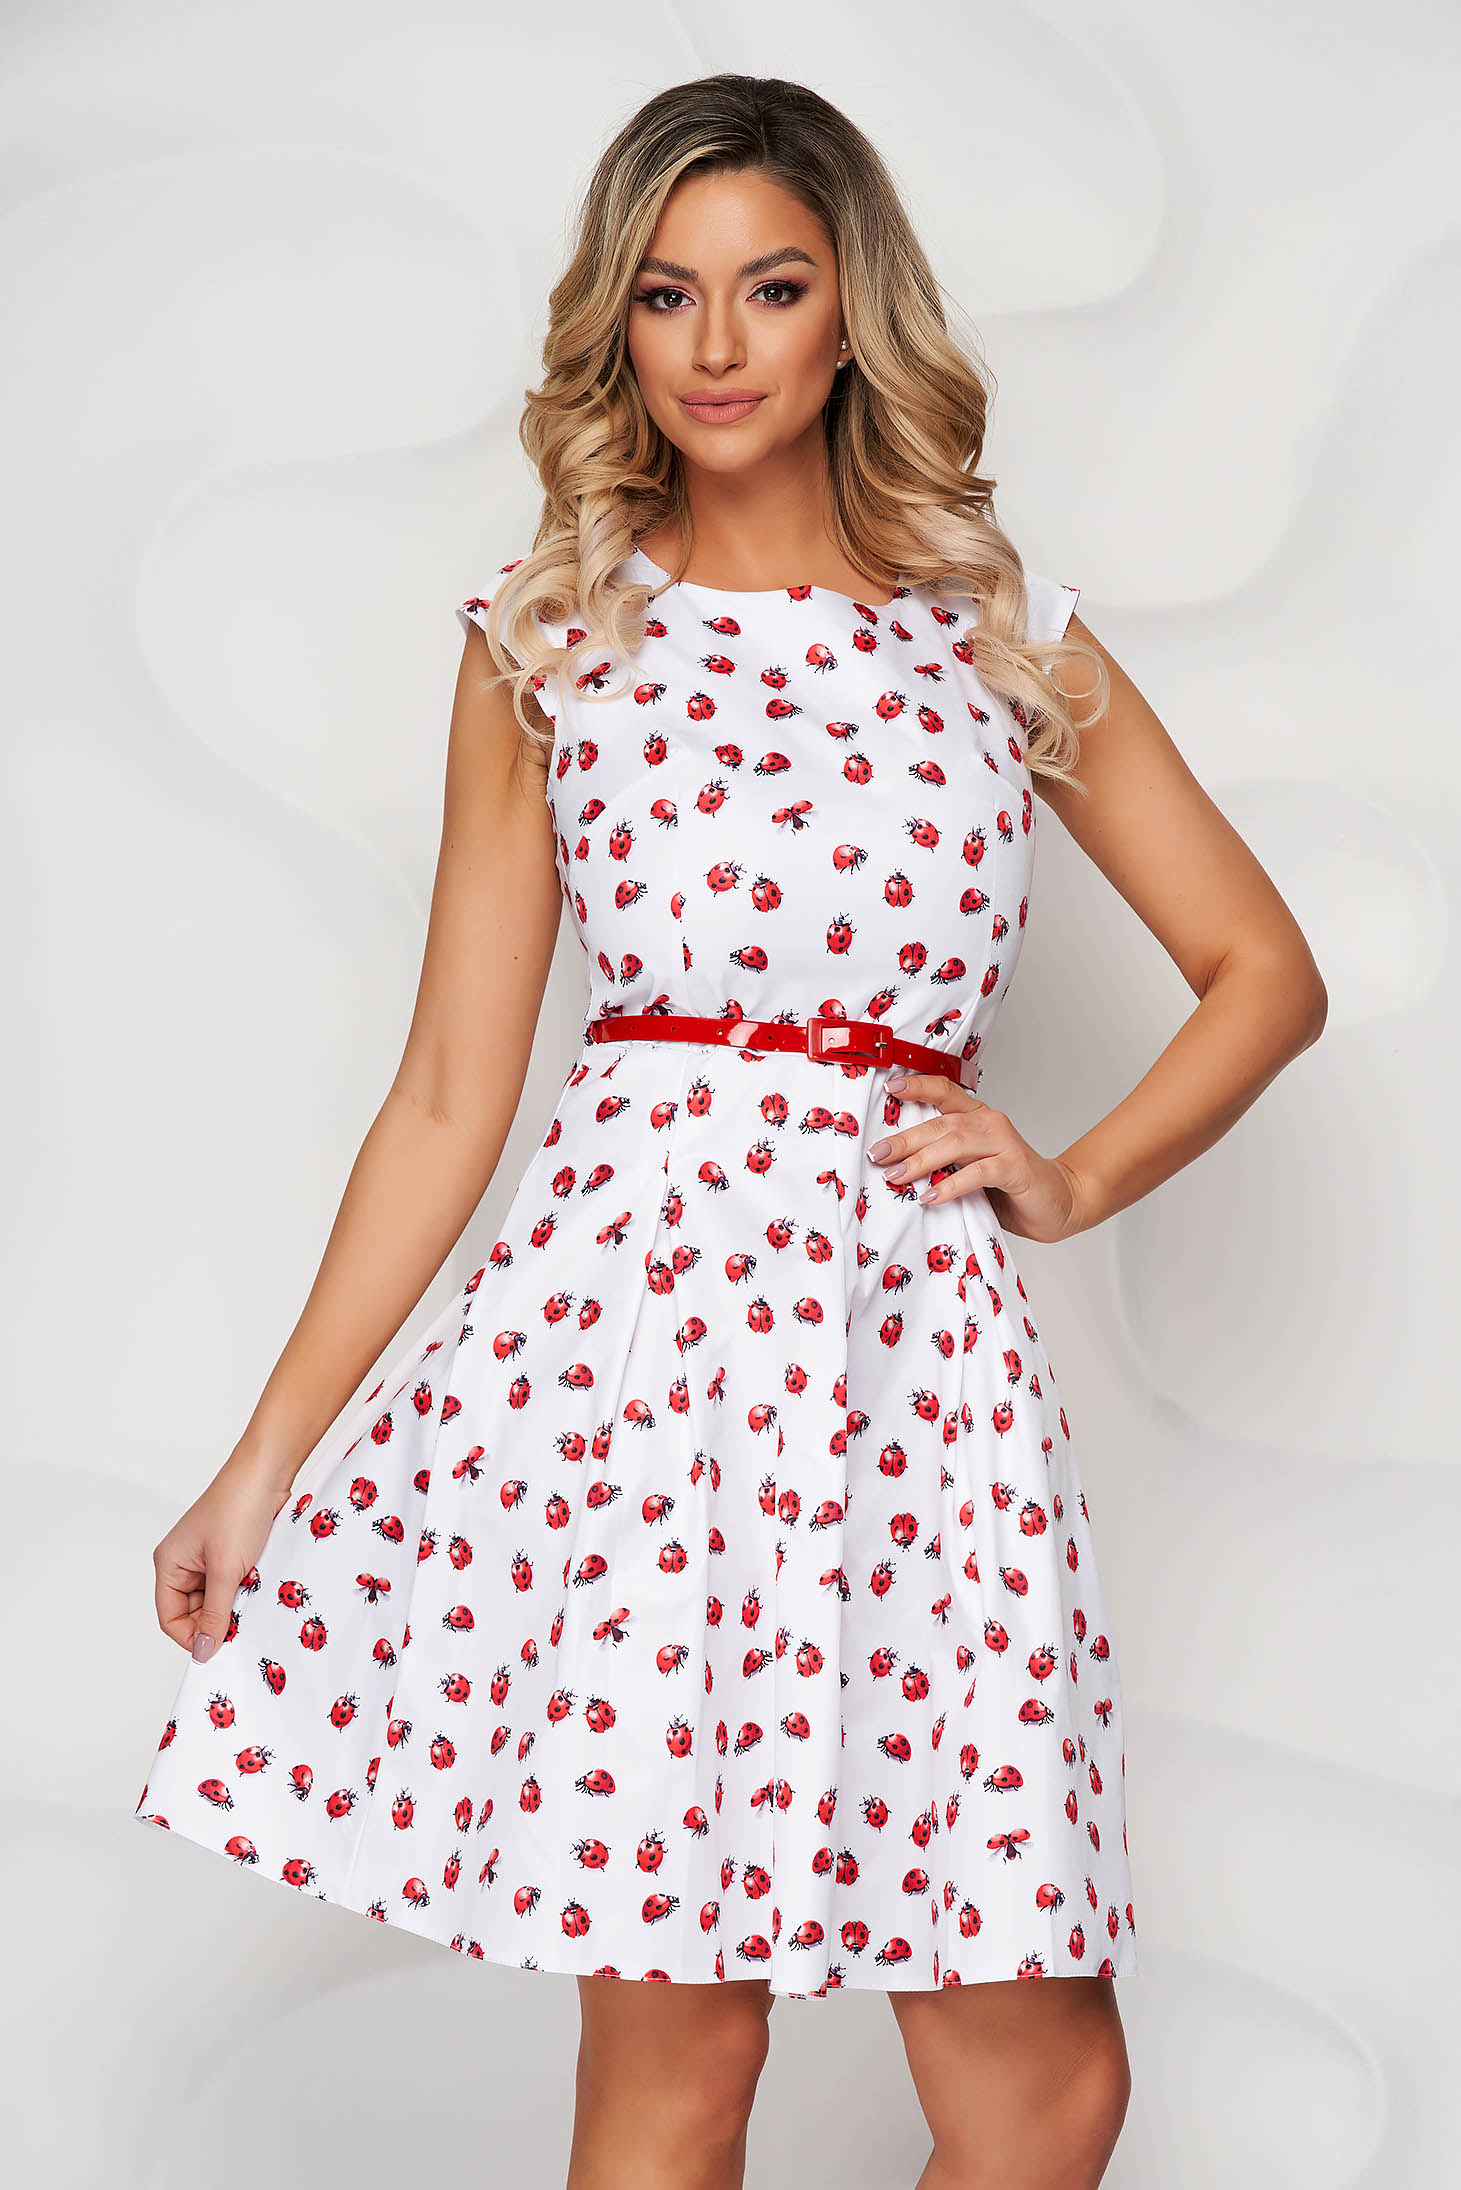 White dress with graphic details cloche accessorized with belt slightly elastic fabric